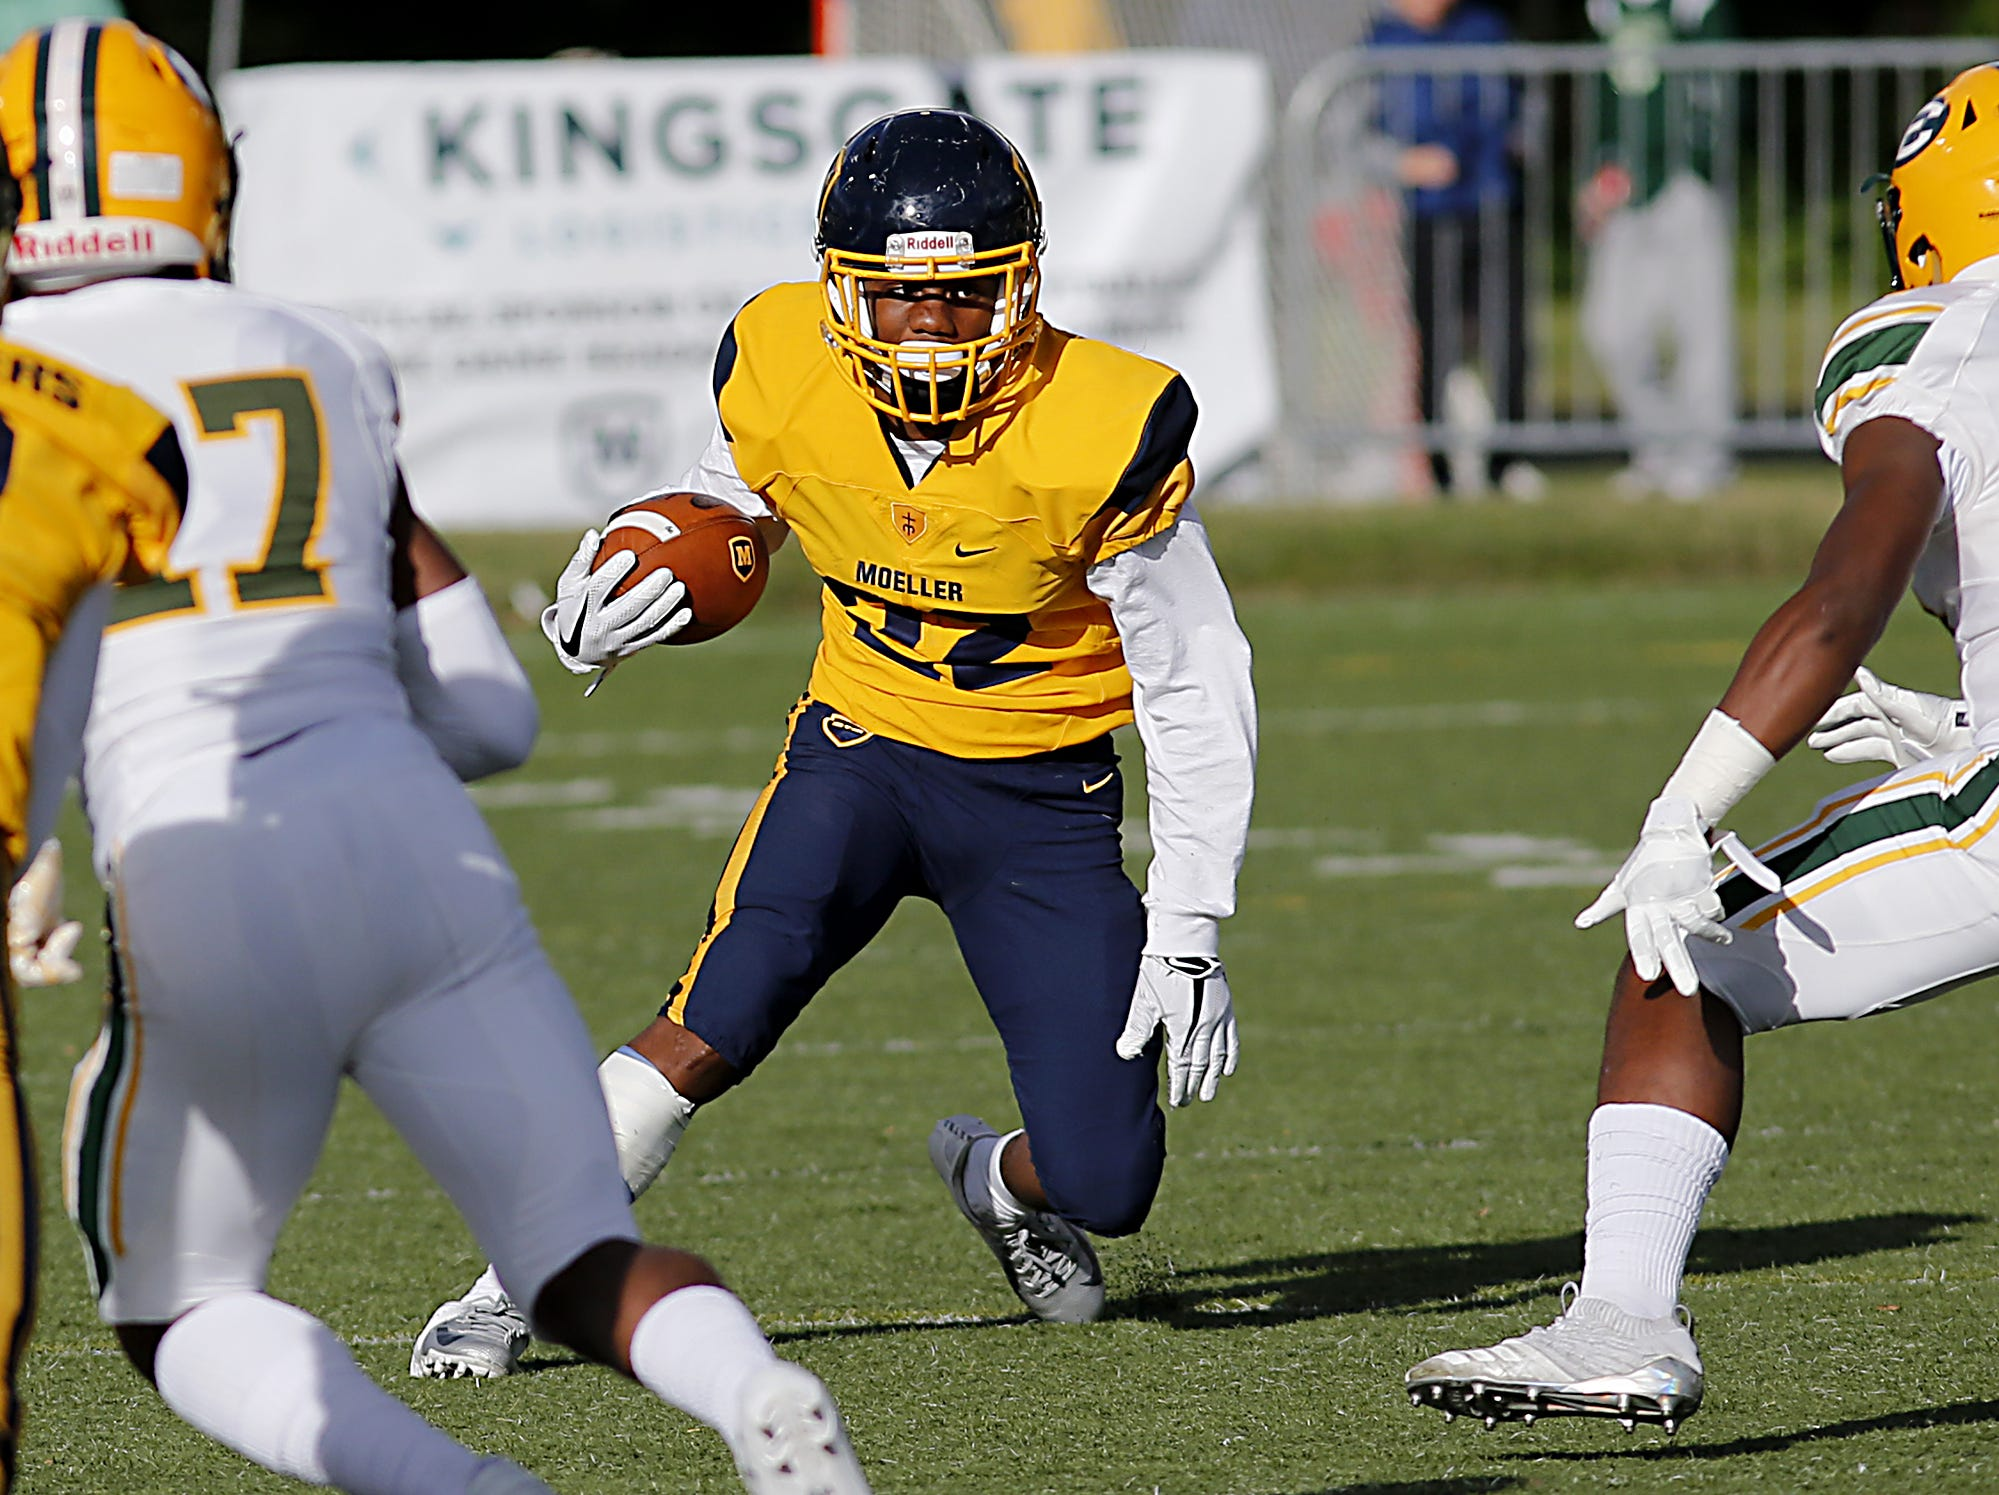 Moeller running back Bryan White looks for running room against Lakewood St. Edward during their game at Lockland Saturday, Oct. 20, 2018.